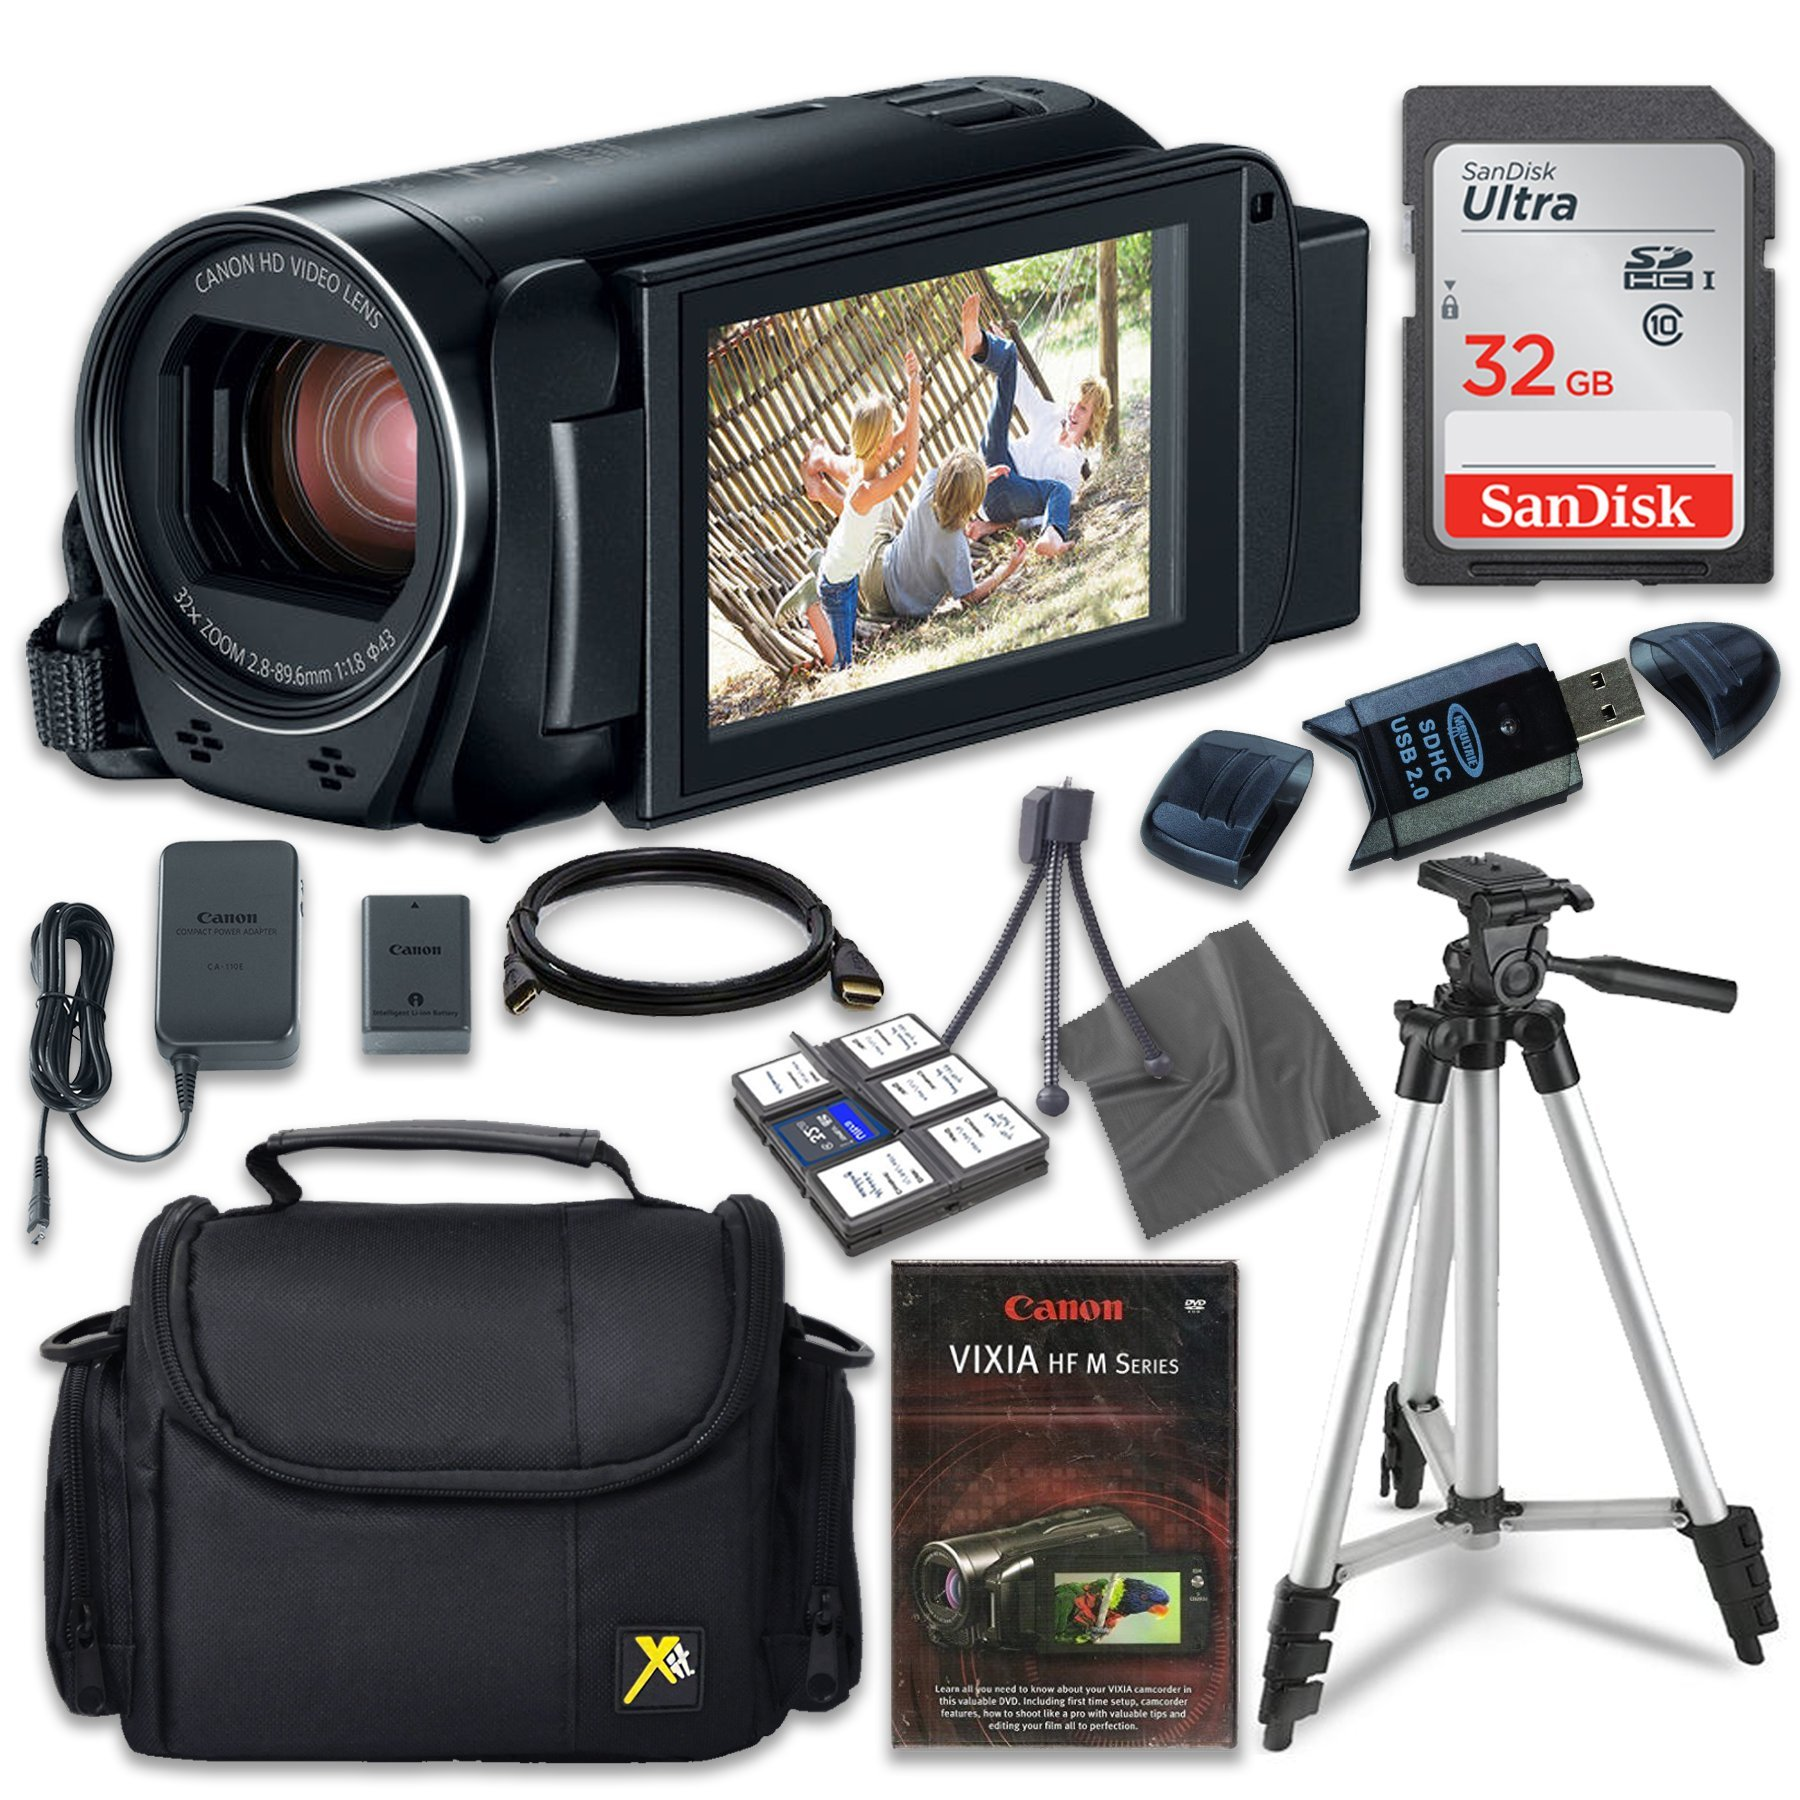 Canon VIXIA HF R800 Camcorder with Sandisk 32 GB SD Memory Card + Extra Accessory Bundle by Canon